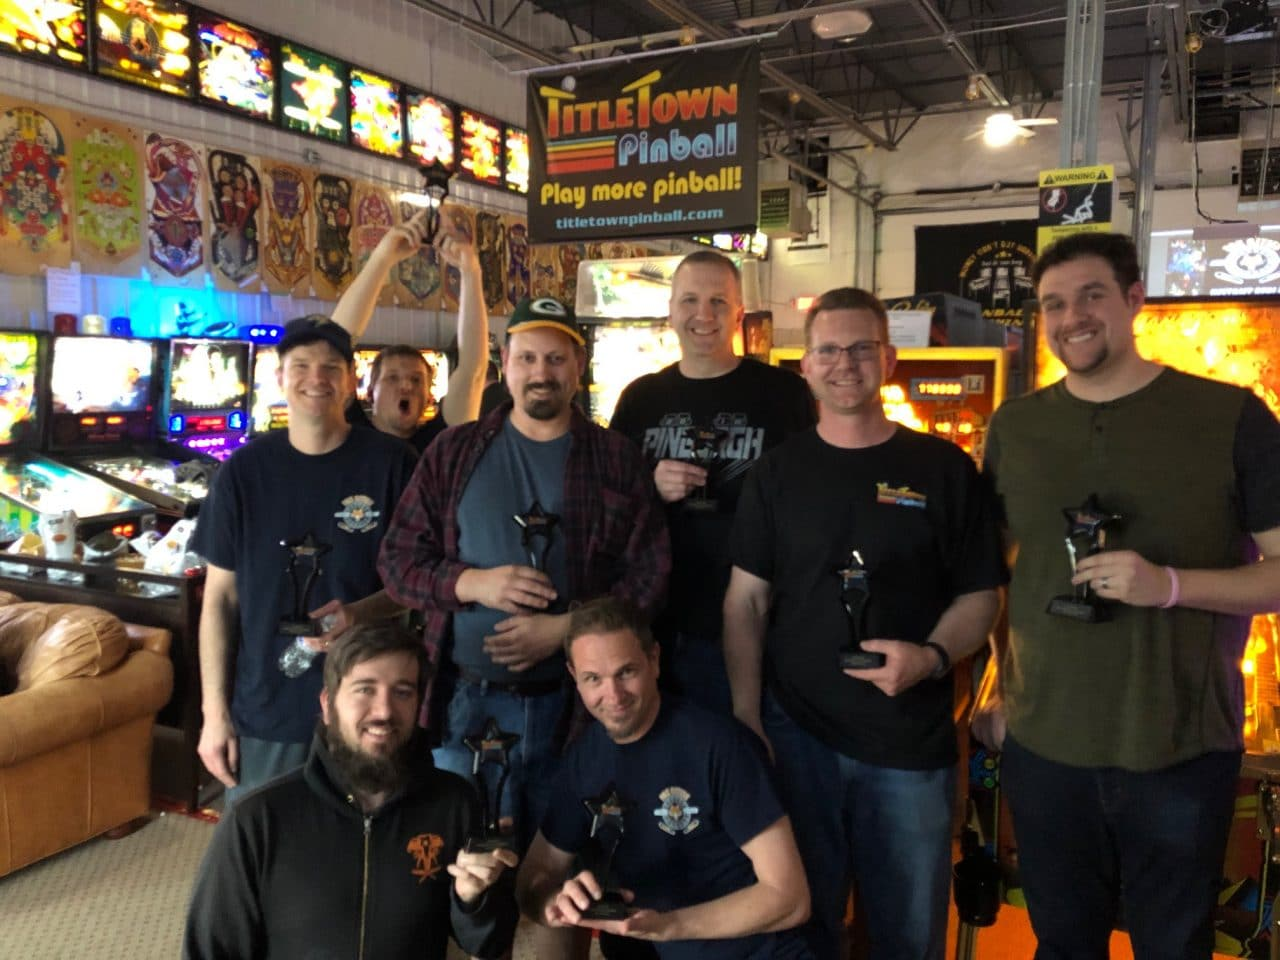 2019 May Match Play Pinball Tournament in Green Bay, WI